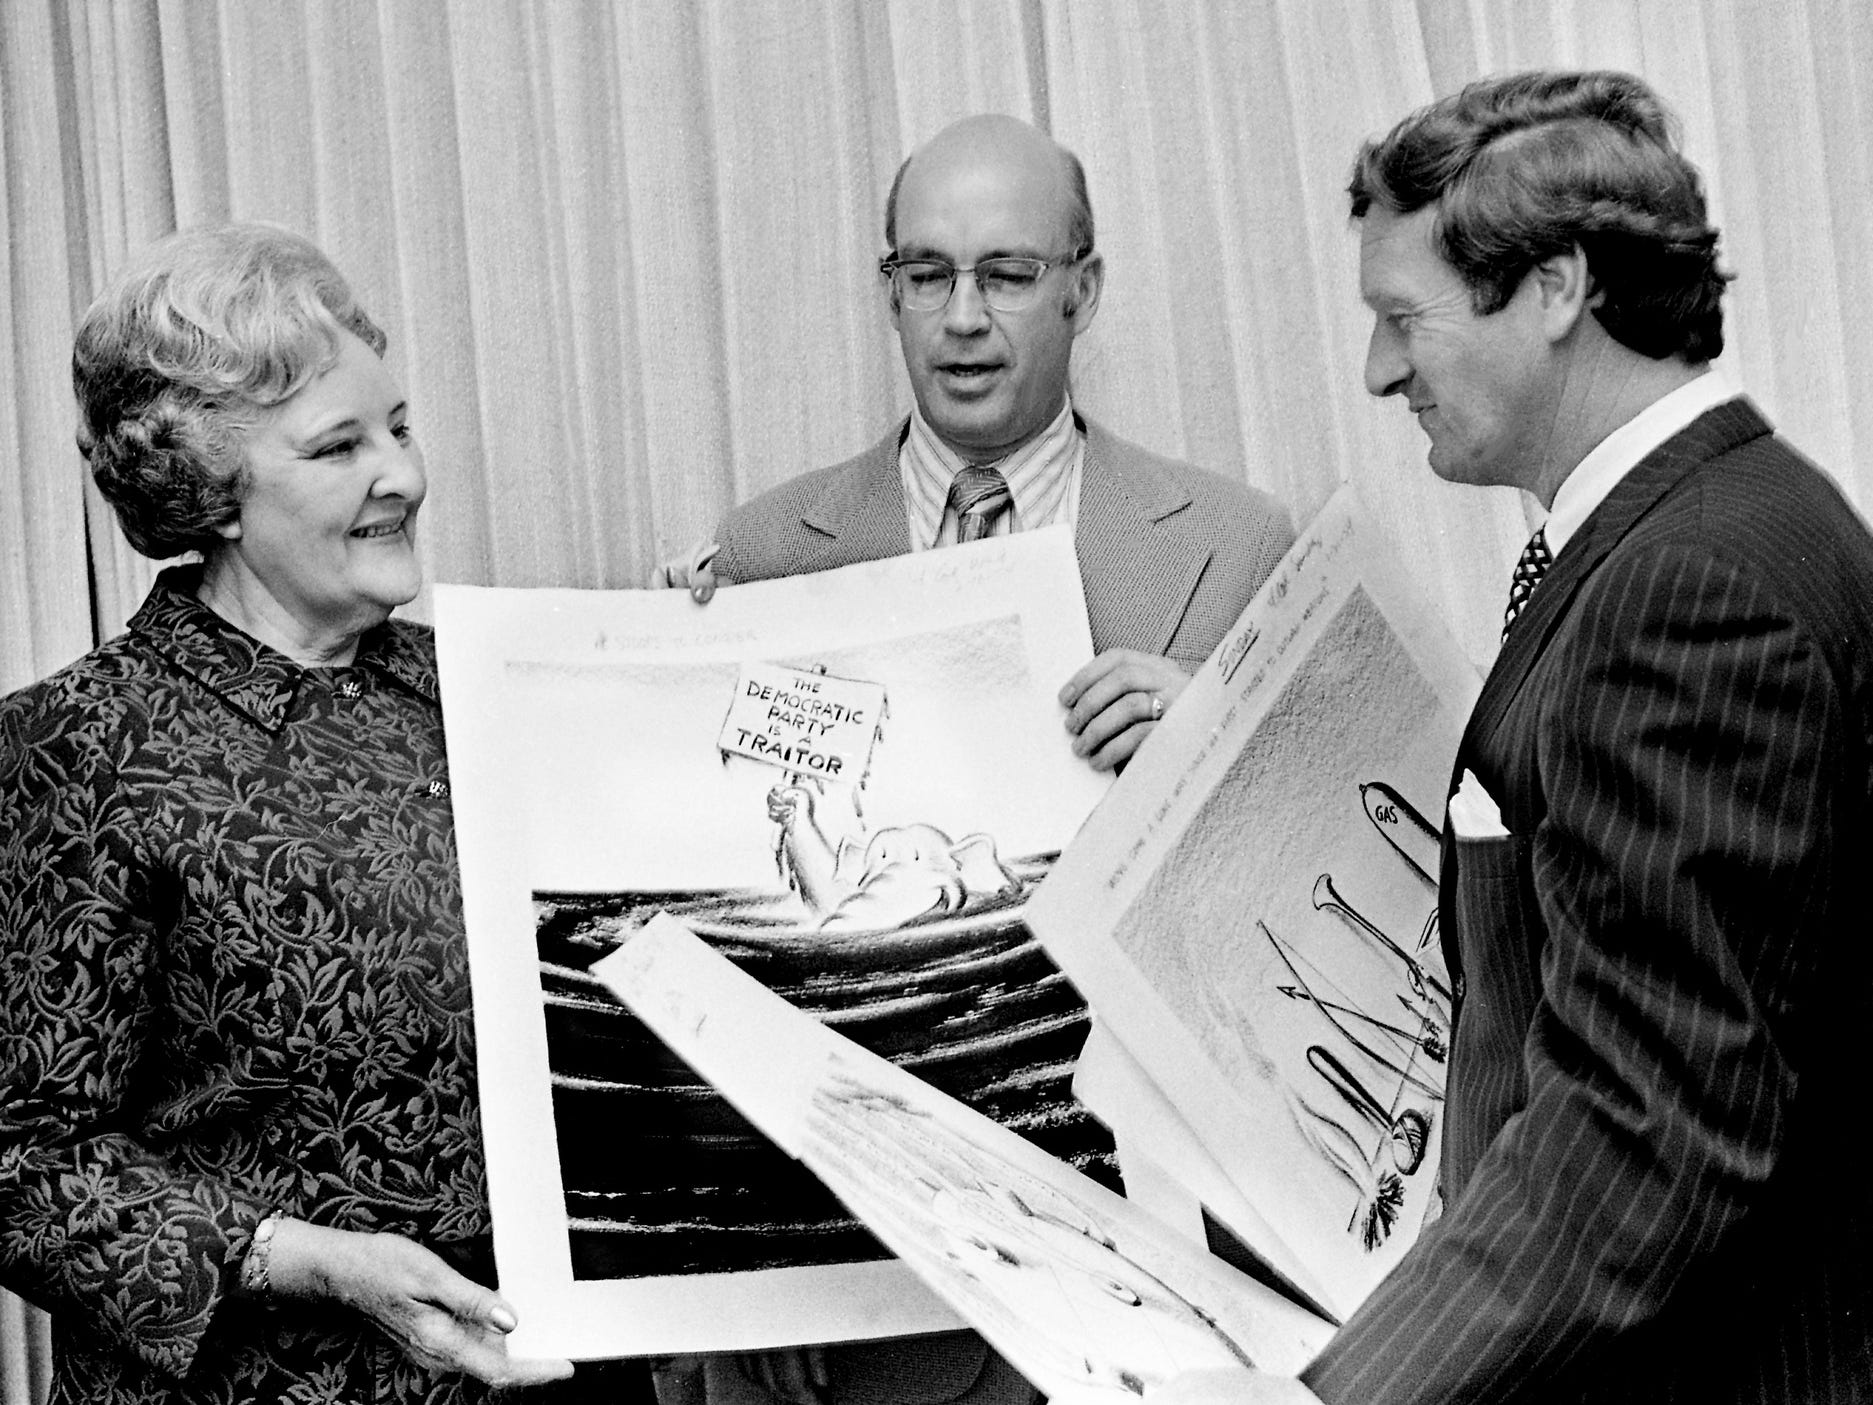 Mrs. Tom Little, left, with Frank Grisham, director of the Joint University Library, and John Seigenthaler, publisher of The Tennessean, looks at some of the 5,000 editorial cartoons by her late husband May 4, 1963. All of them were published in The Tennessean, and all were presented to the JUL at Vanderbilt for use of researchers.